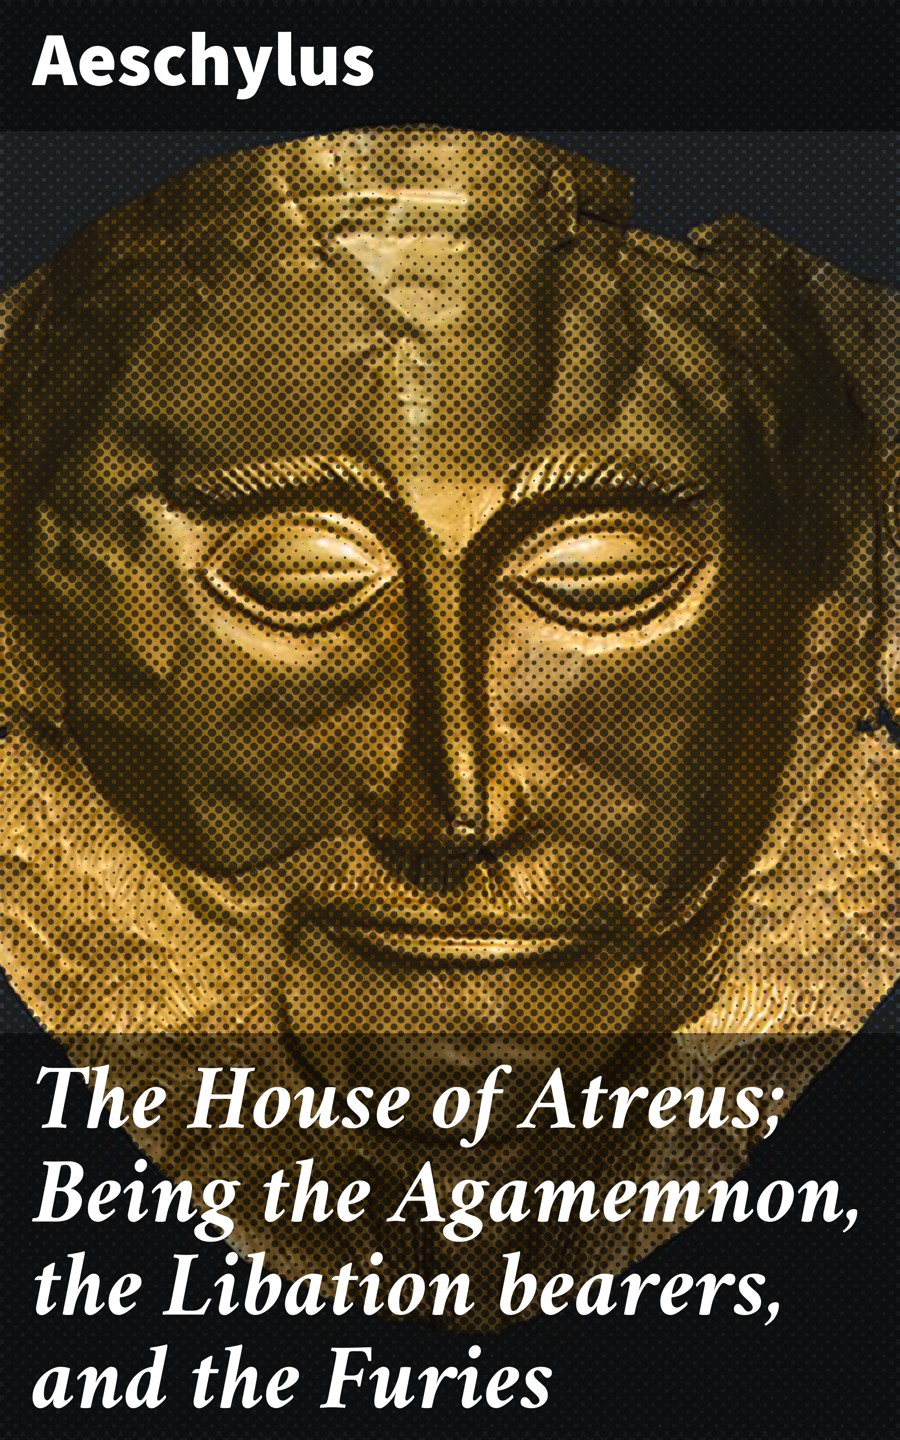 Aeschylus The House of Atreus; Being the Agamemnon, the Libation bearers, and the Furies the damage manual